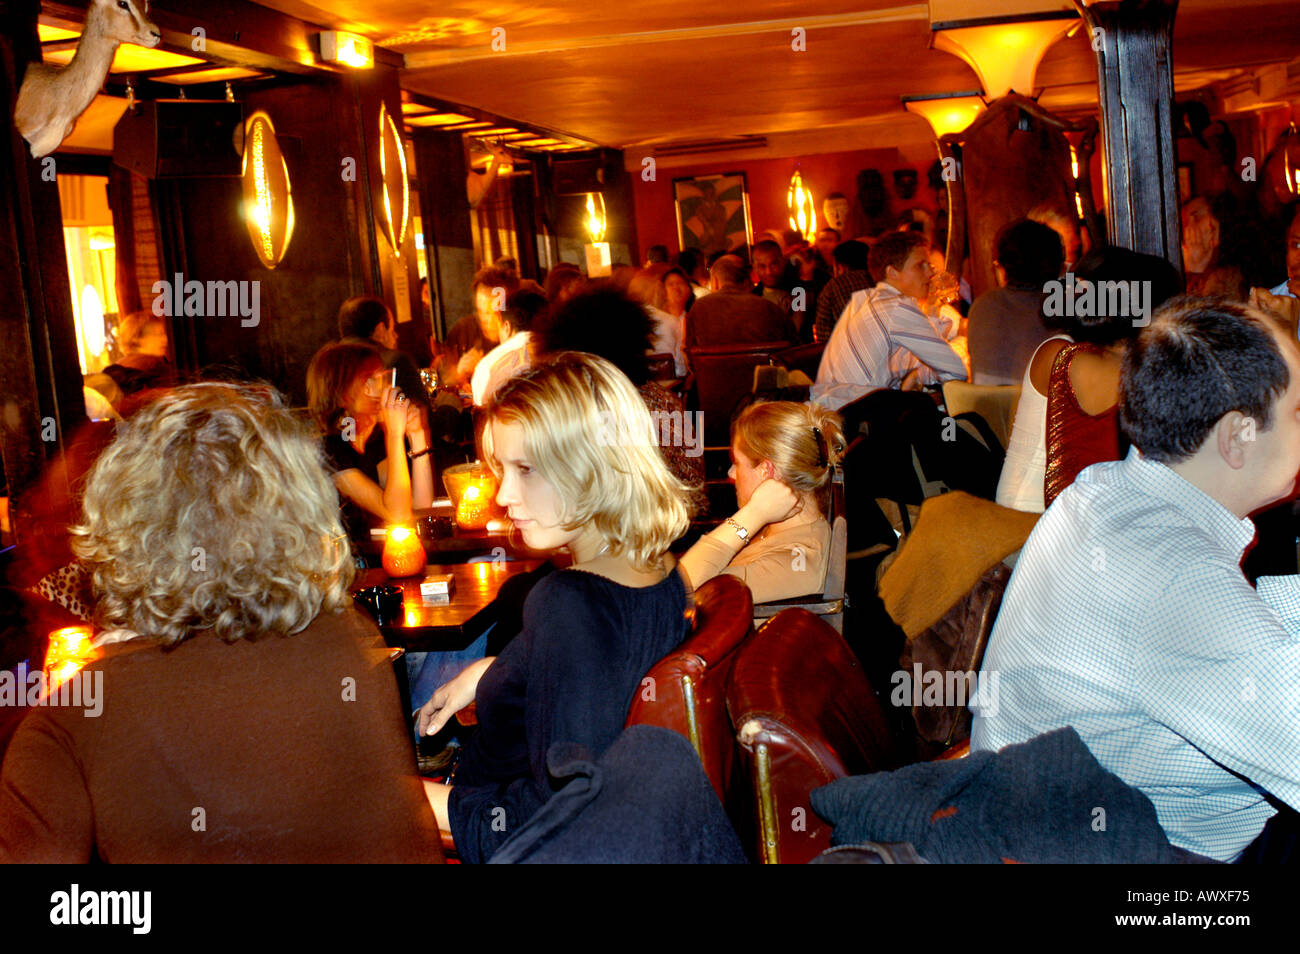 PARIS France Crowd Of People In Dining Room Af Rican Theme Bar Restaurant LImpala Lounge Night